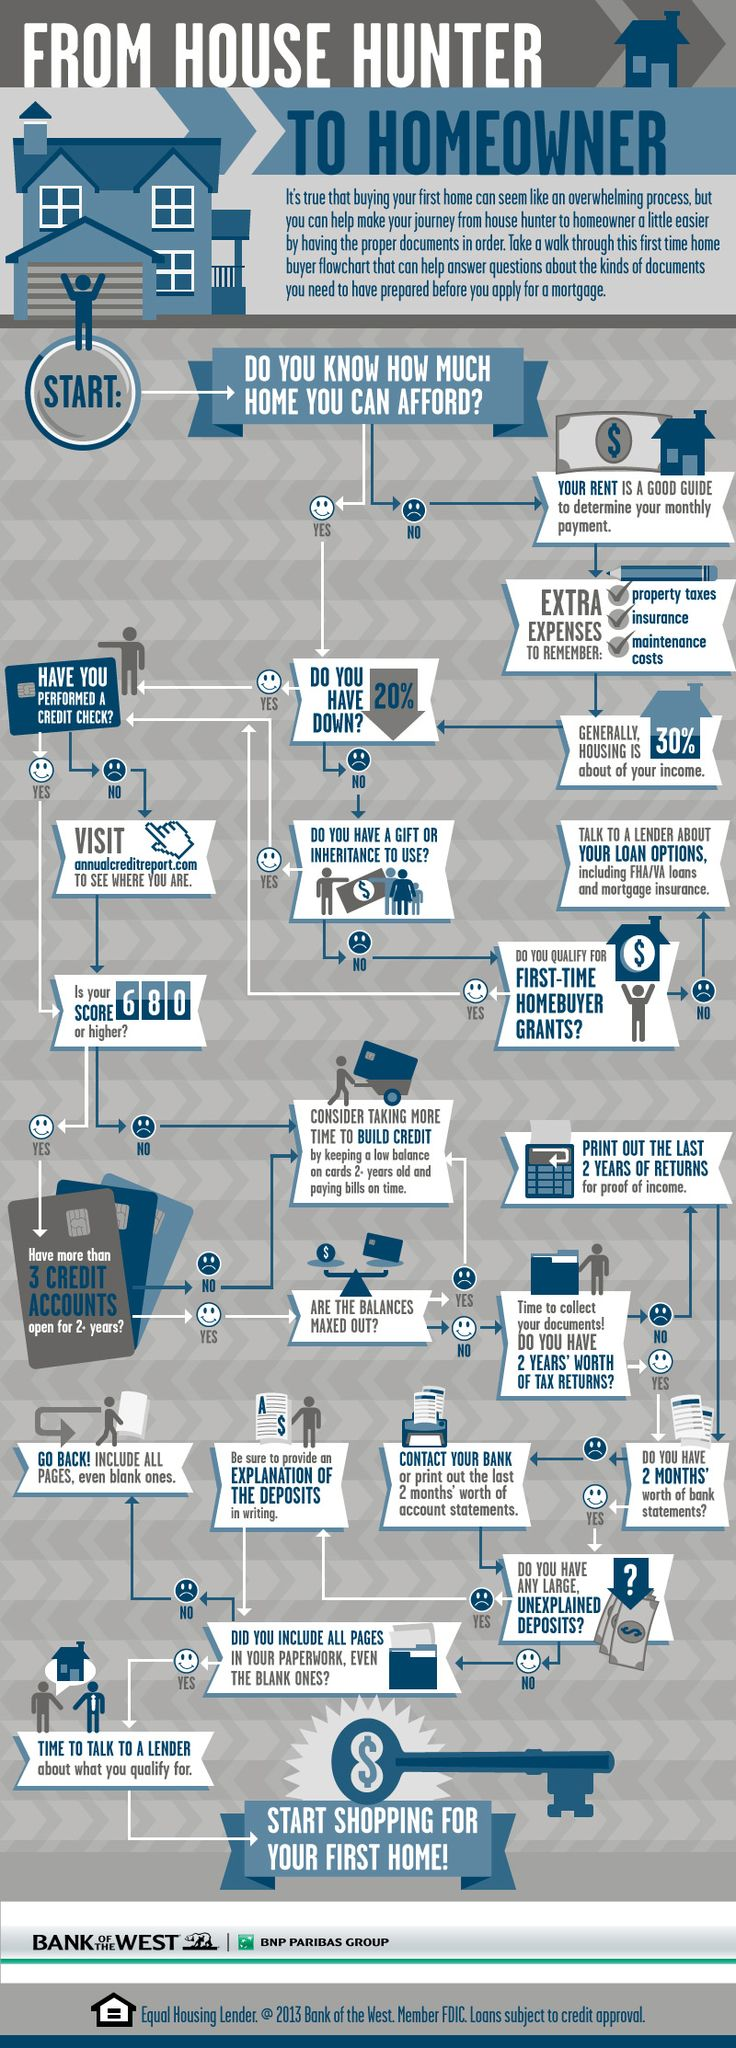 This first time home buyer flowchart helps to demystify the home buying process. From establishing affordability, to credit scores, down payment infor